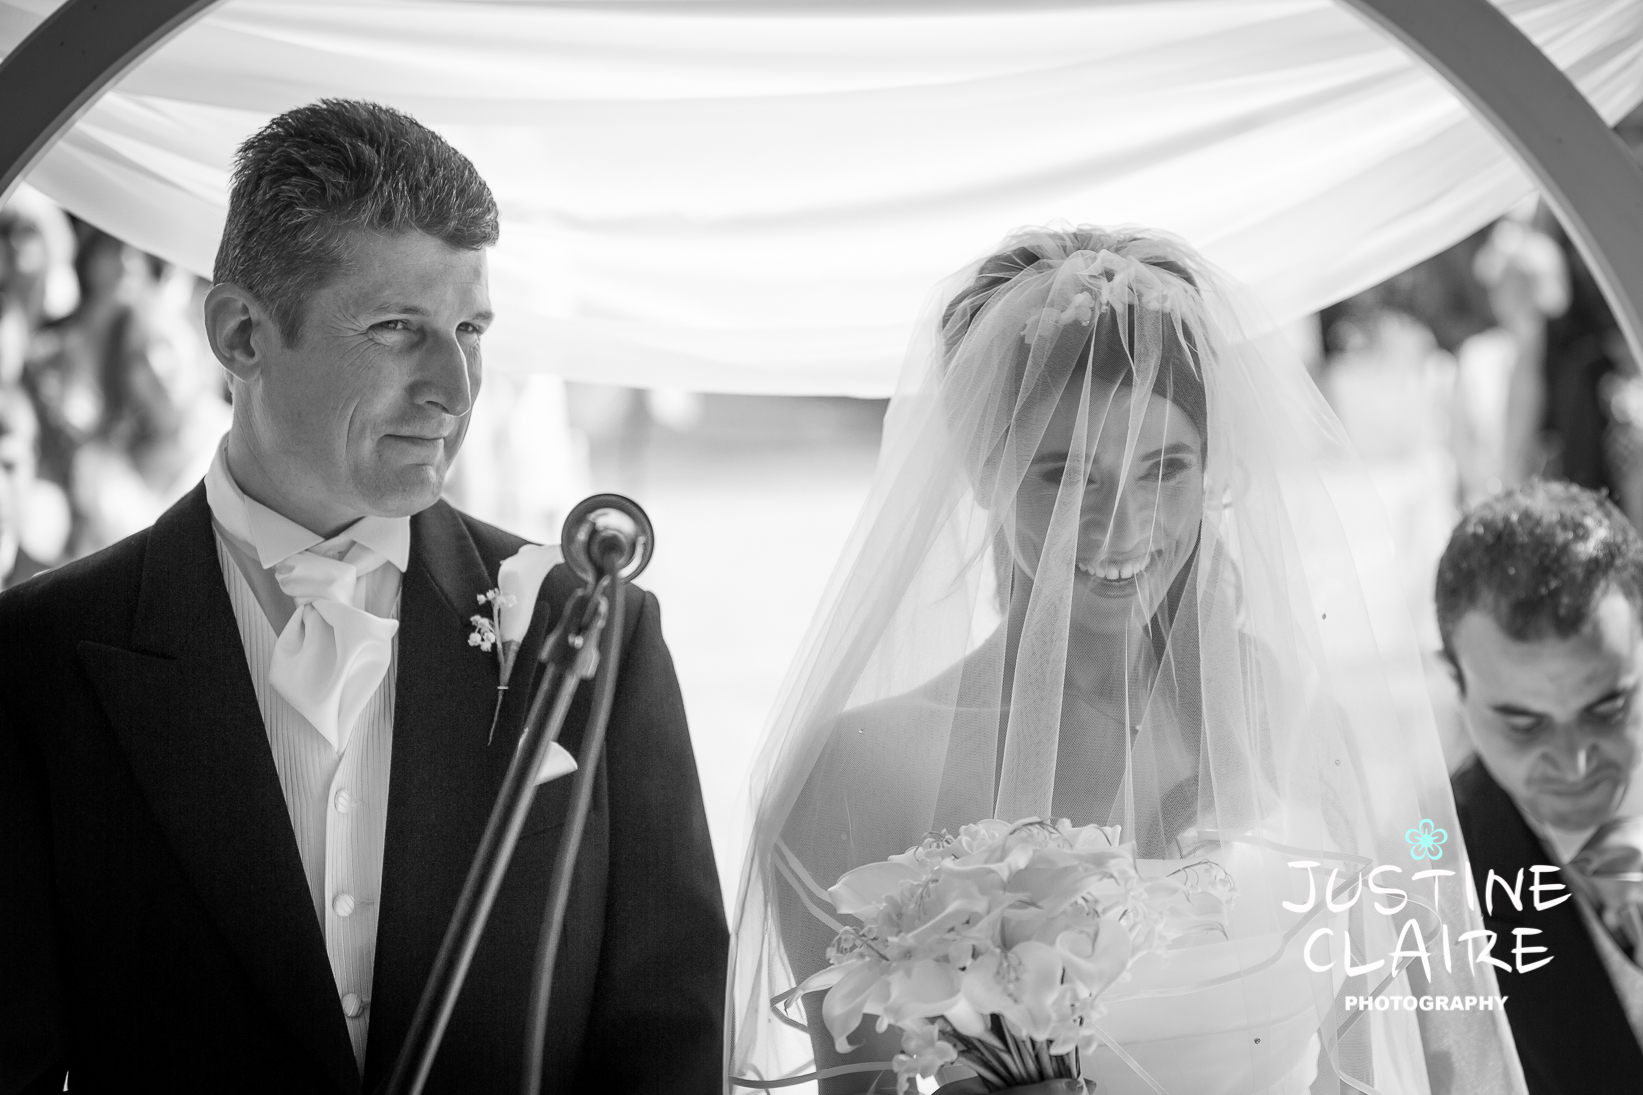 Alexander House wedding photographer photographers19.jpg